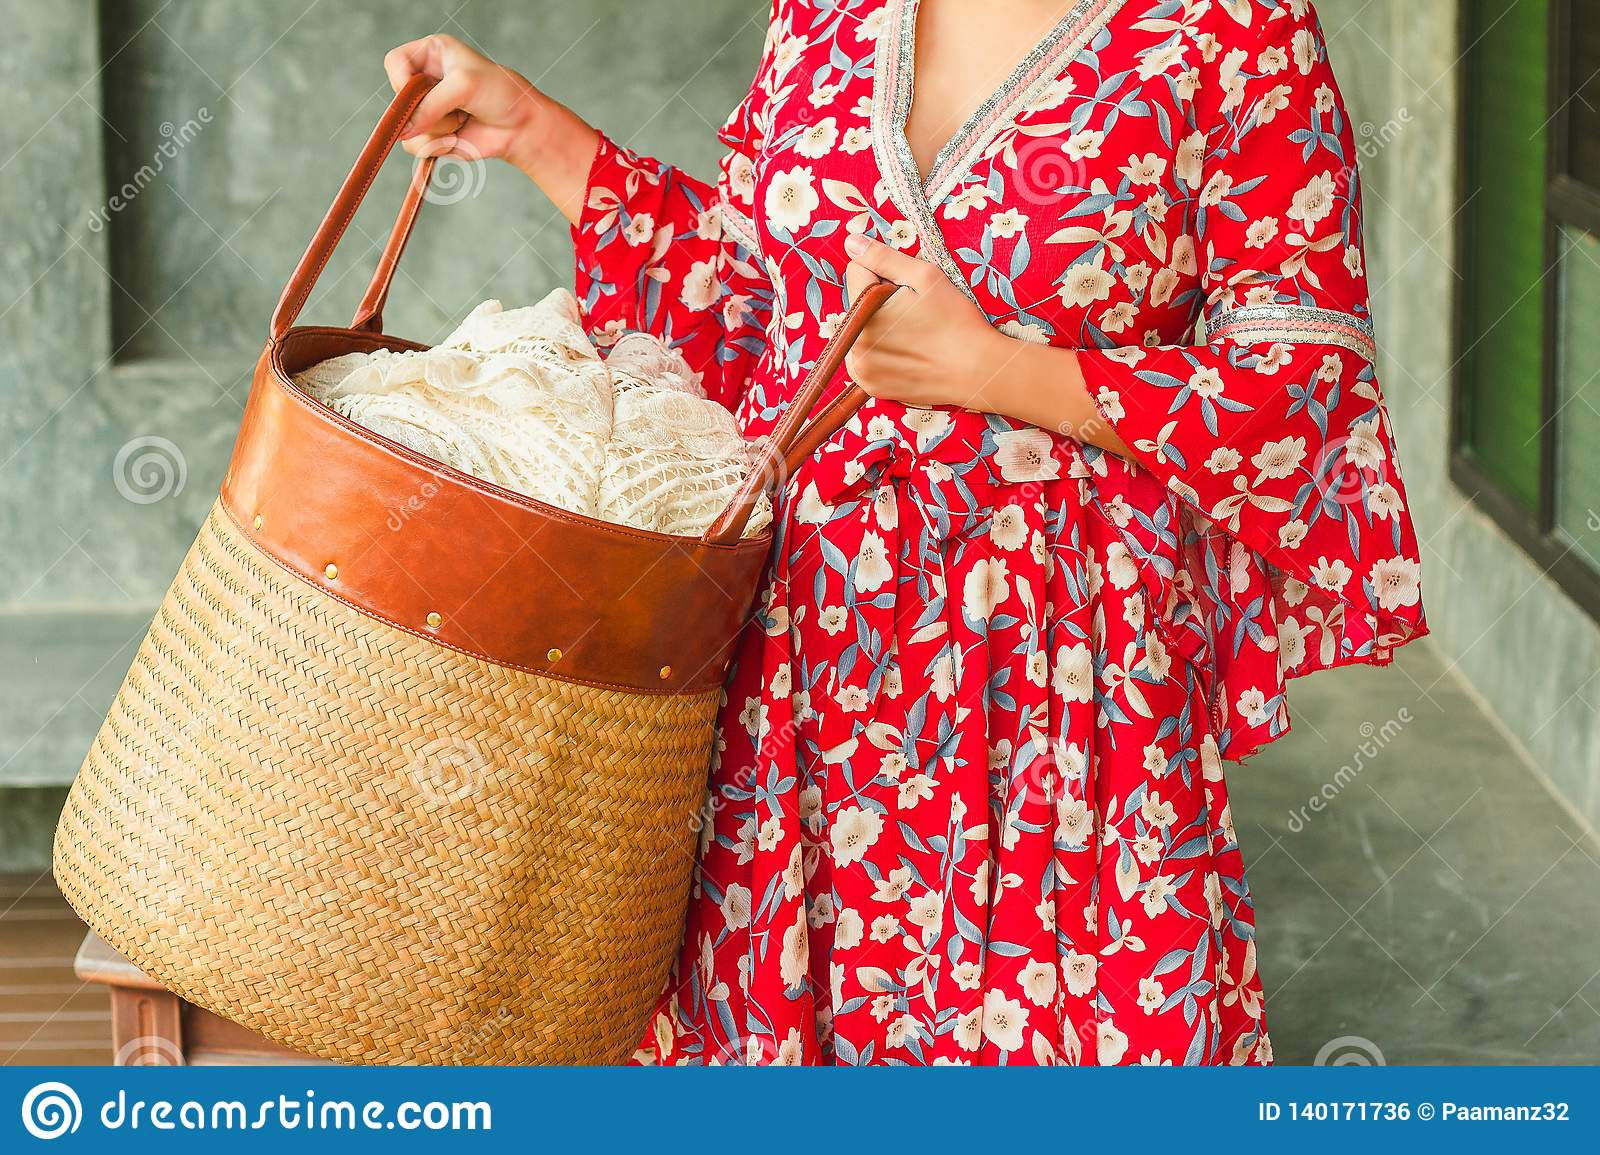 9202e558ef Asian Woman Carrying Laundry Cloth Basket Stock Photo - Image of ...